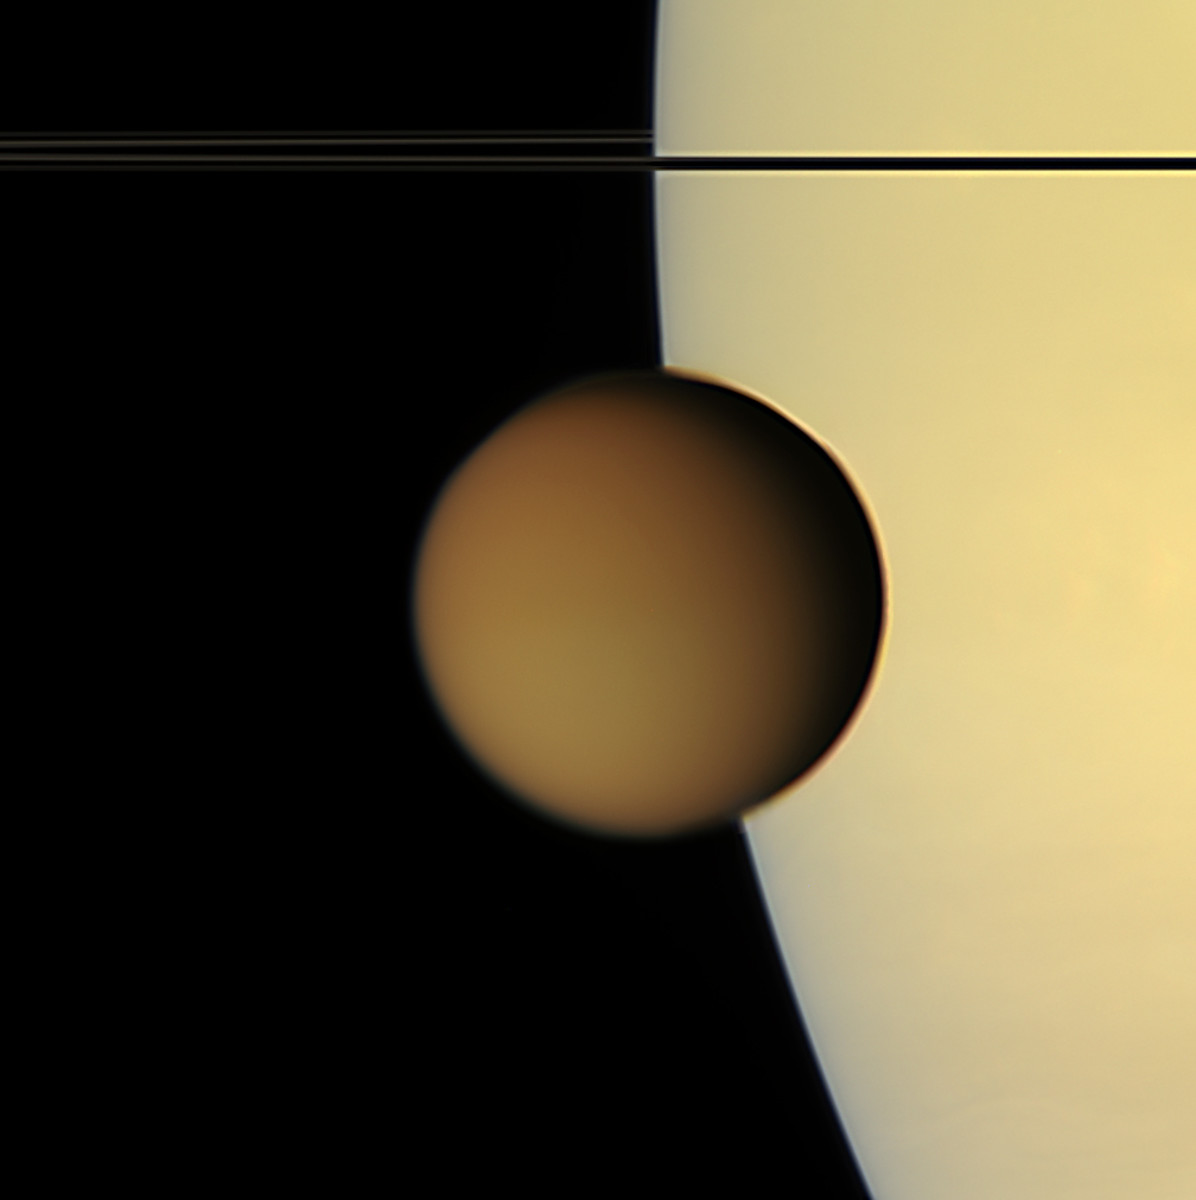 Titan, with Saturn in the background